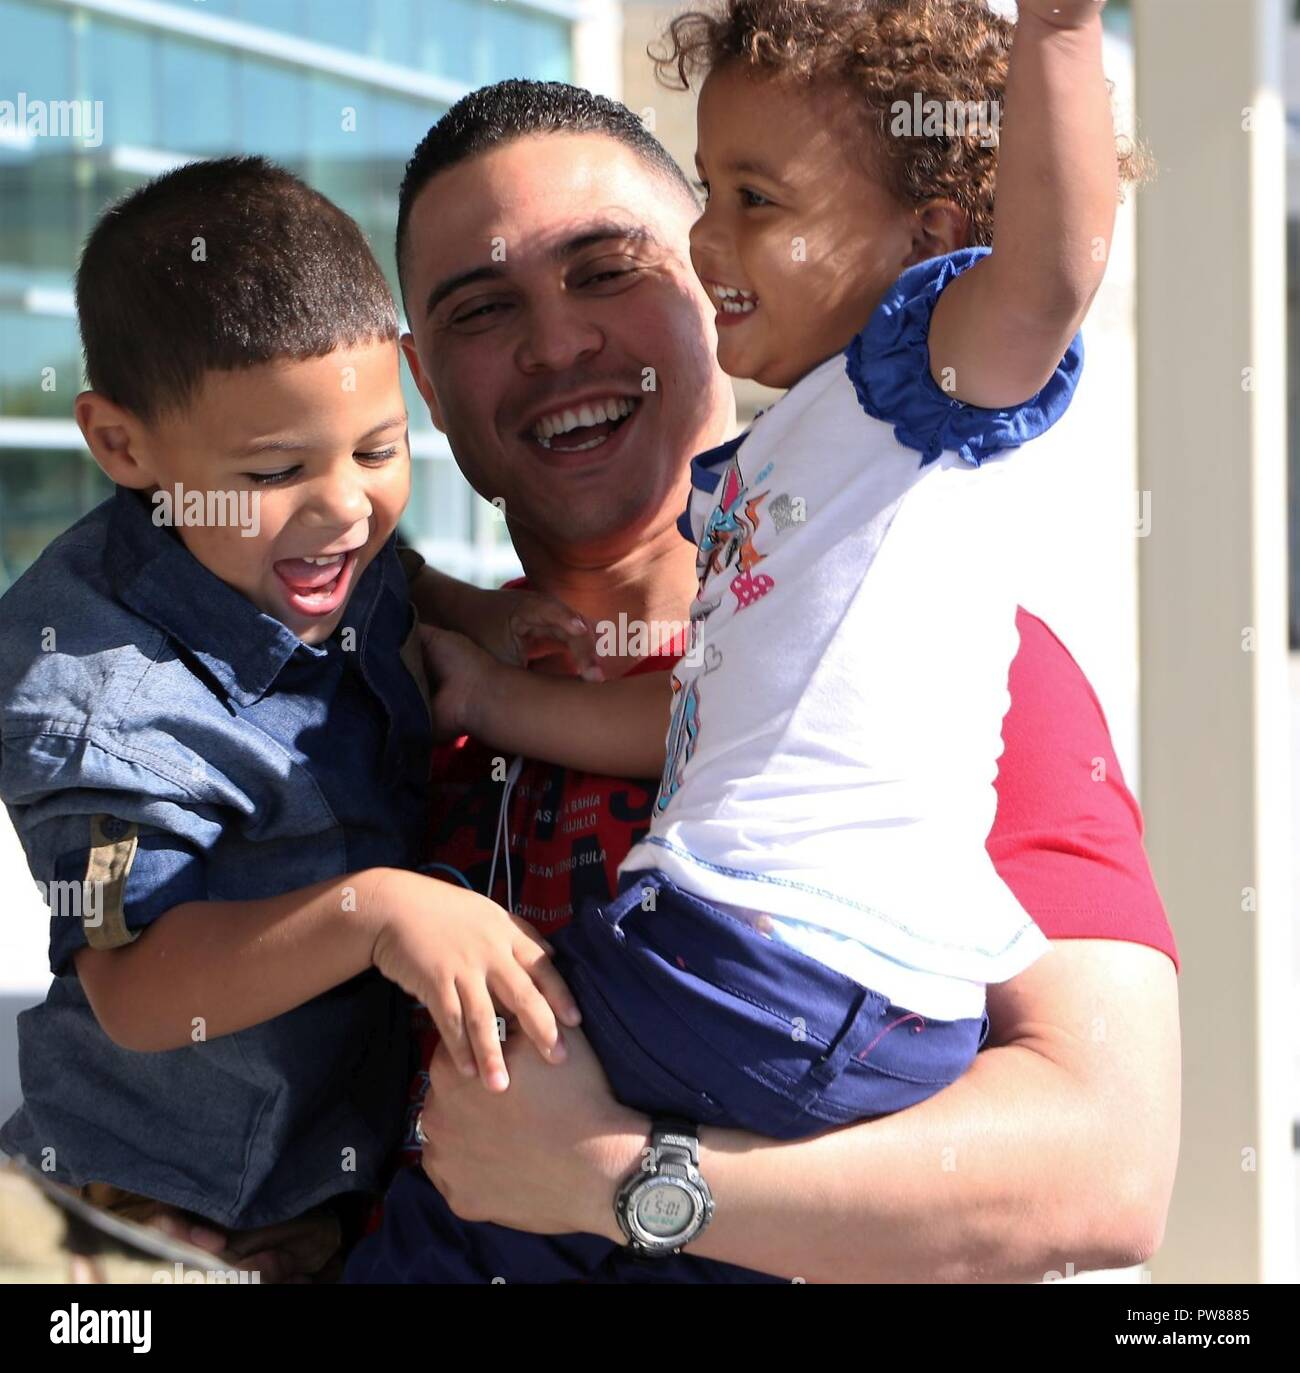 First Lieutenant Carlos Romero, disbursement officer with the 9th Financial Management Sustainment Unit, Special Troops Battalion, 1st Infantry Division Sustainment Brigade, holds his children Adriel (right) and Thais Romero at Manhattan Regional Airport, Manhattan, Kansas, after returning from a nine-month deployment to Honduras Sep. 28. Romero's family had also just returned from Puerto Rico shortly after Hurricane Maria devastated the island.  (Sgt. 1st Class Victor Gardner, 1st Inf. Div. Sust. Bde. Public Affairs) - Stock Image